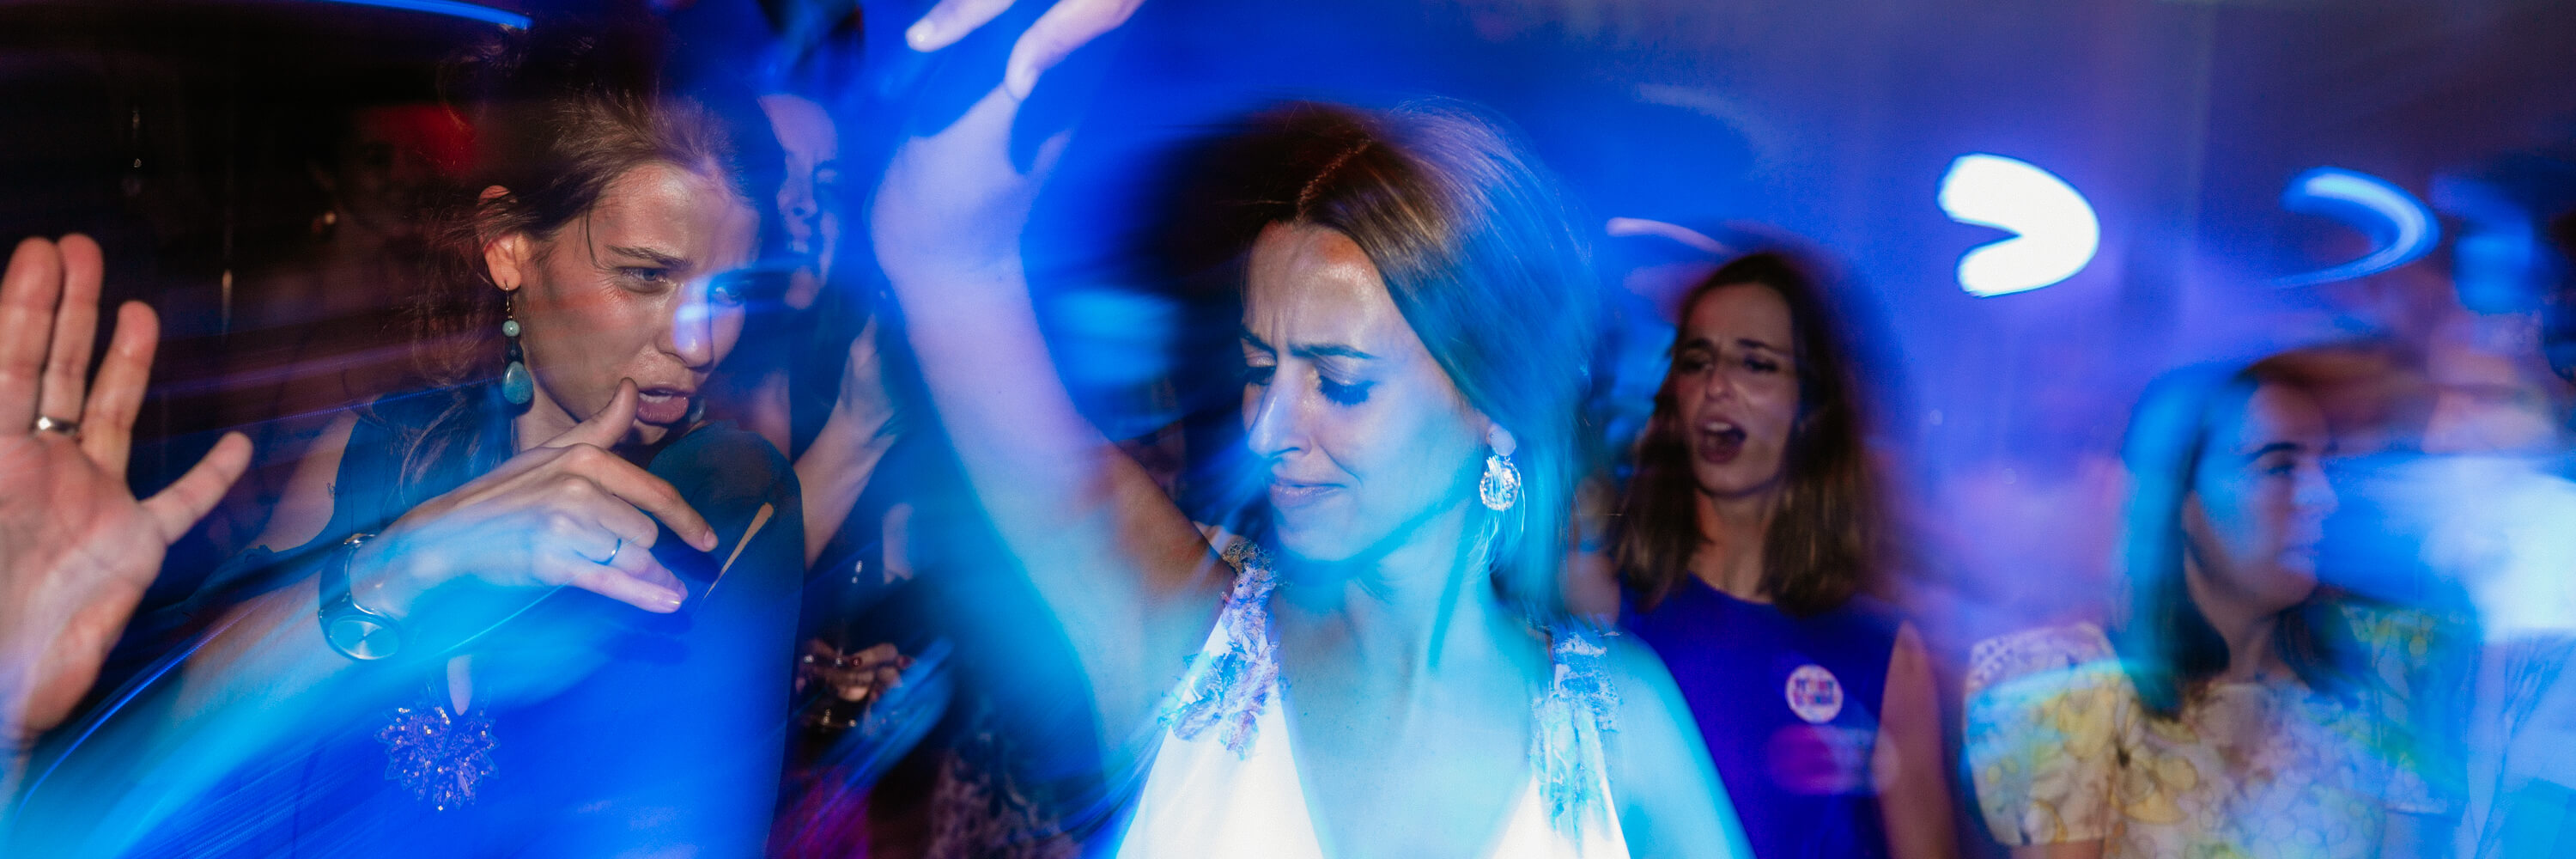 A bride and her friends dancing in beautiful diamond lighting.